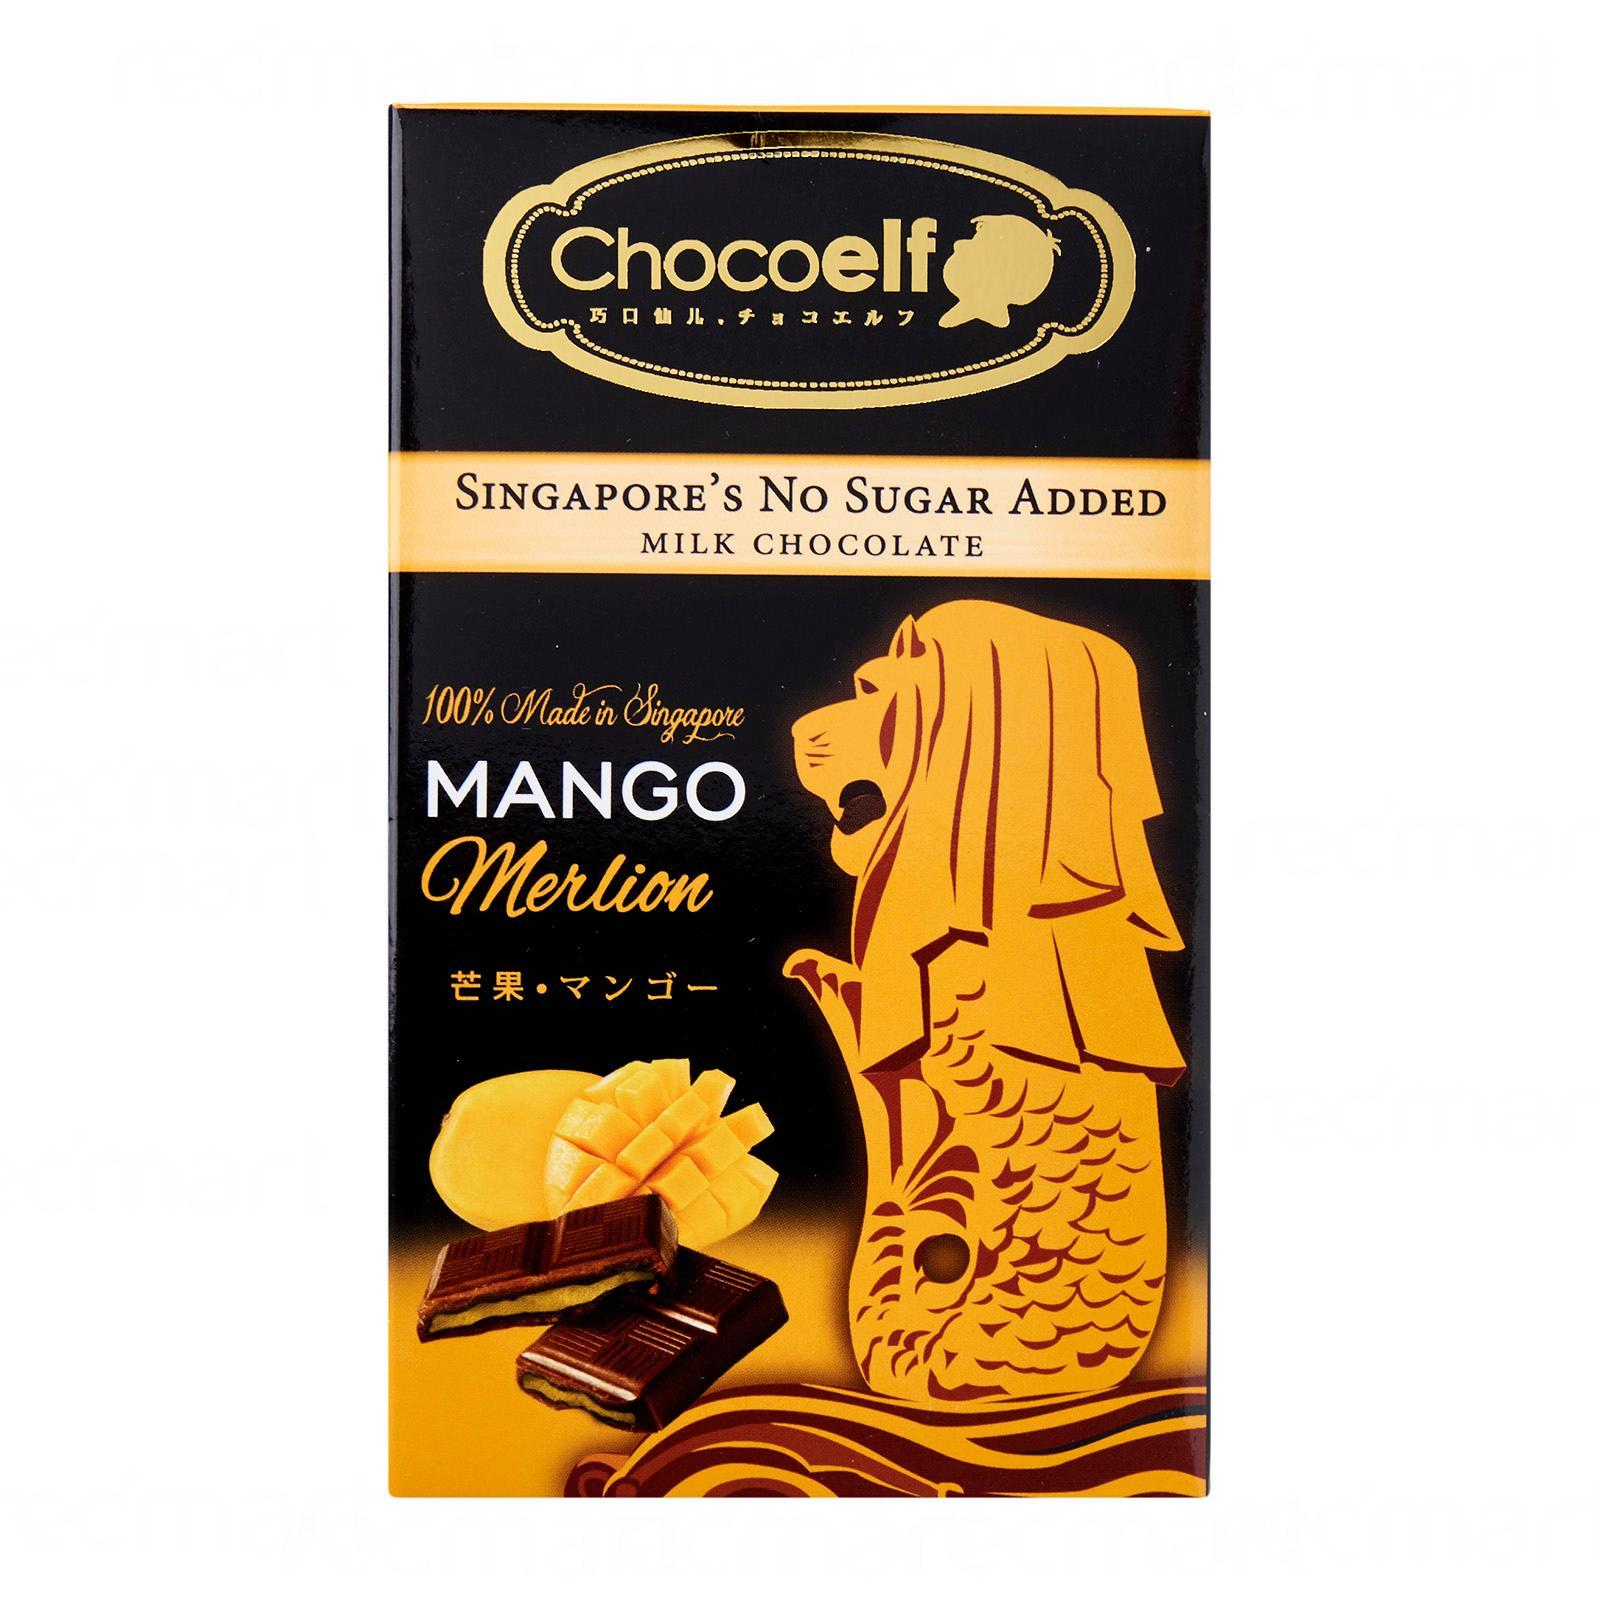 Mango Chocolate Bar (No Sugar Added) - Chocolates - Chocoelf - Naiise